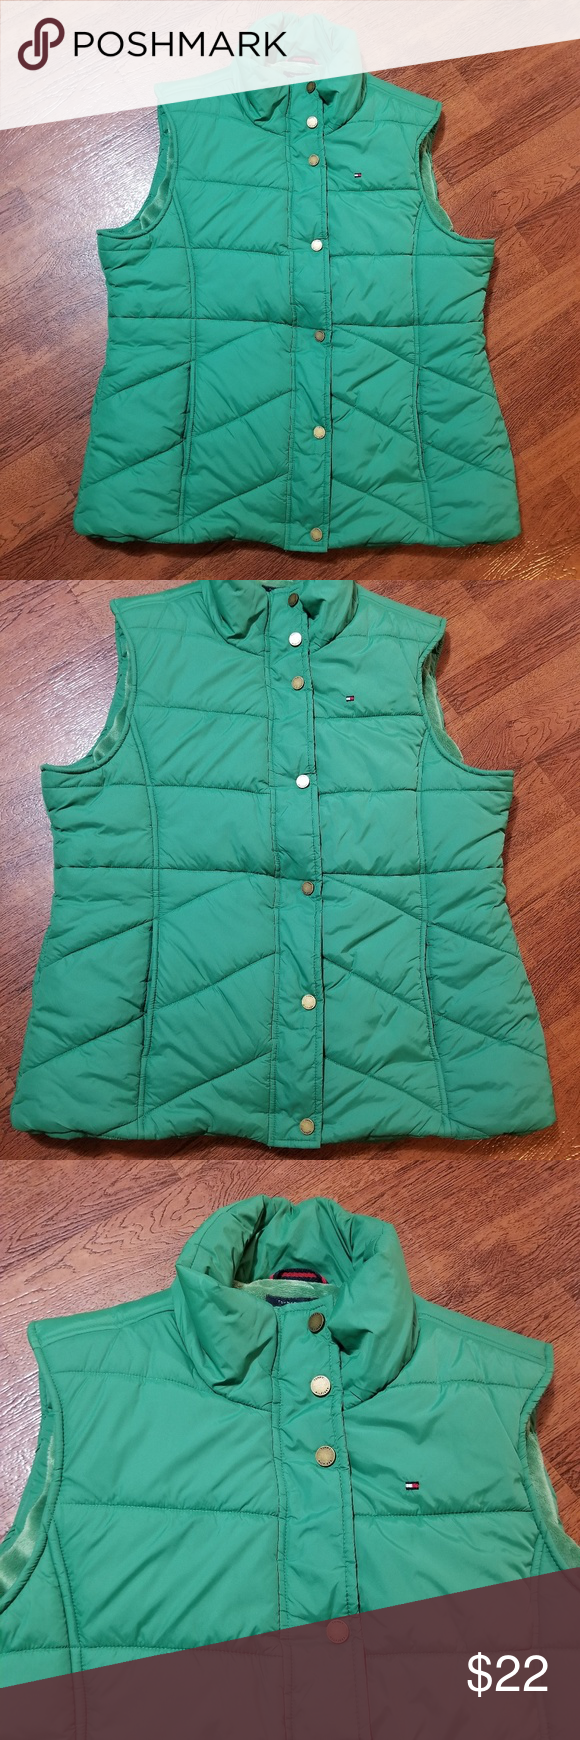 Tommy hilfiger womens size large vest (With images